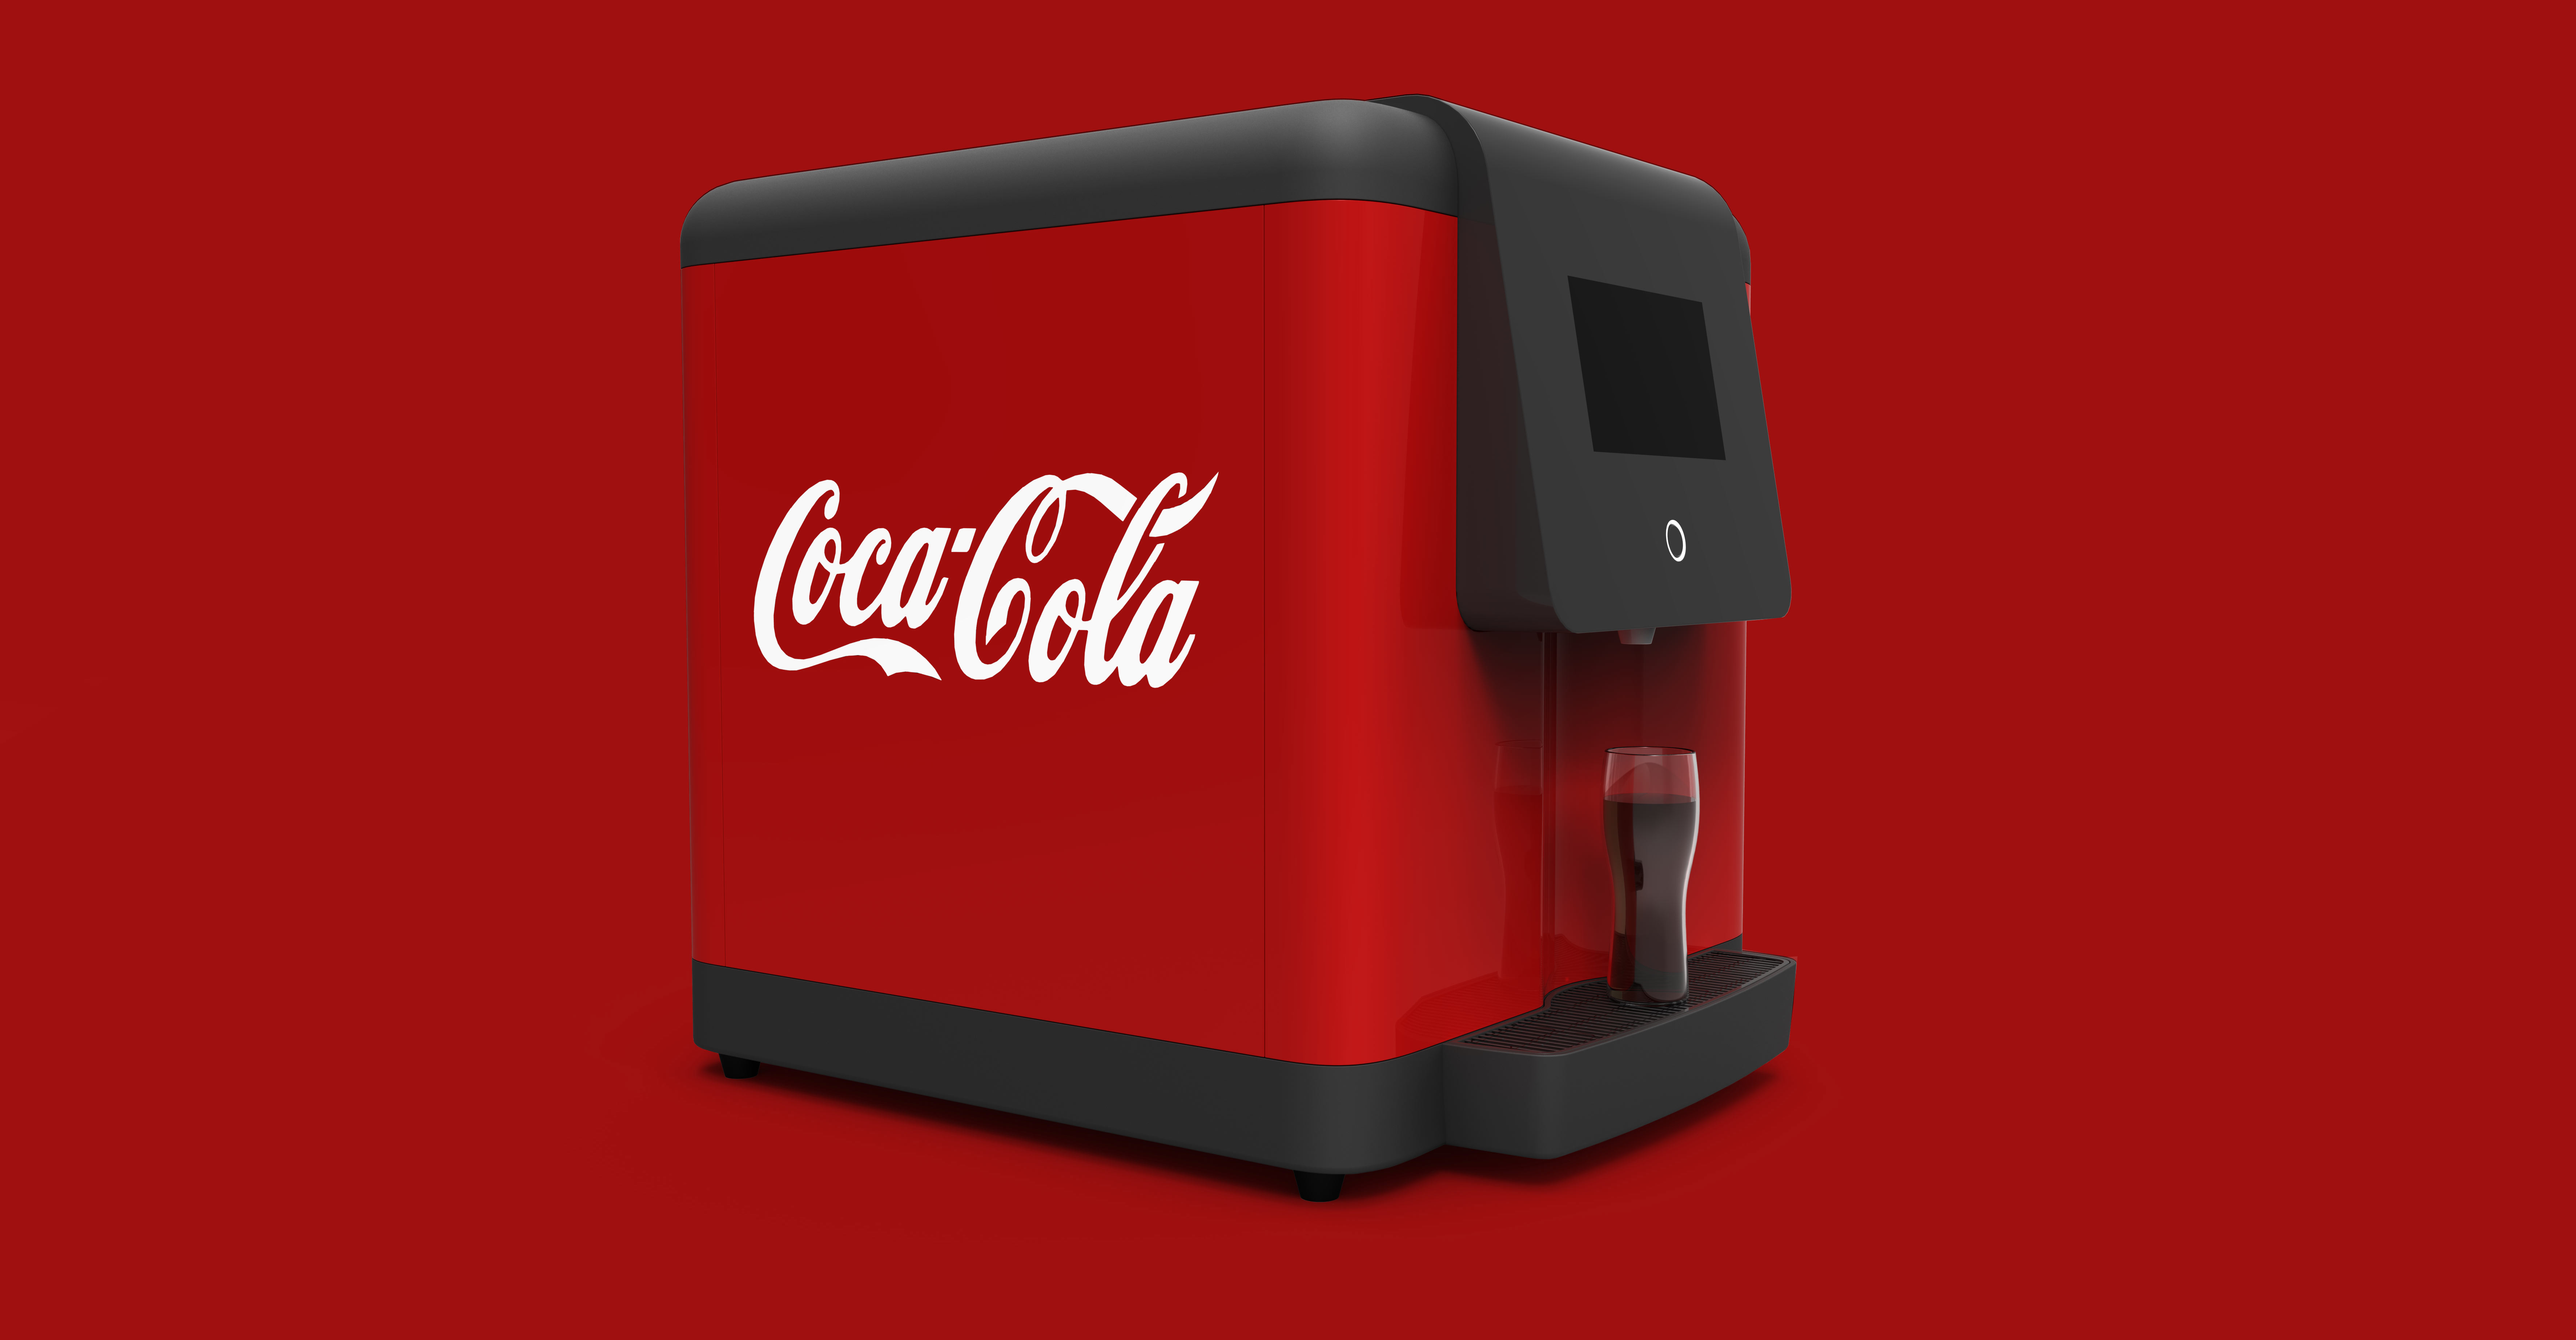 coca-cola_dispenser_product_design_2